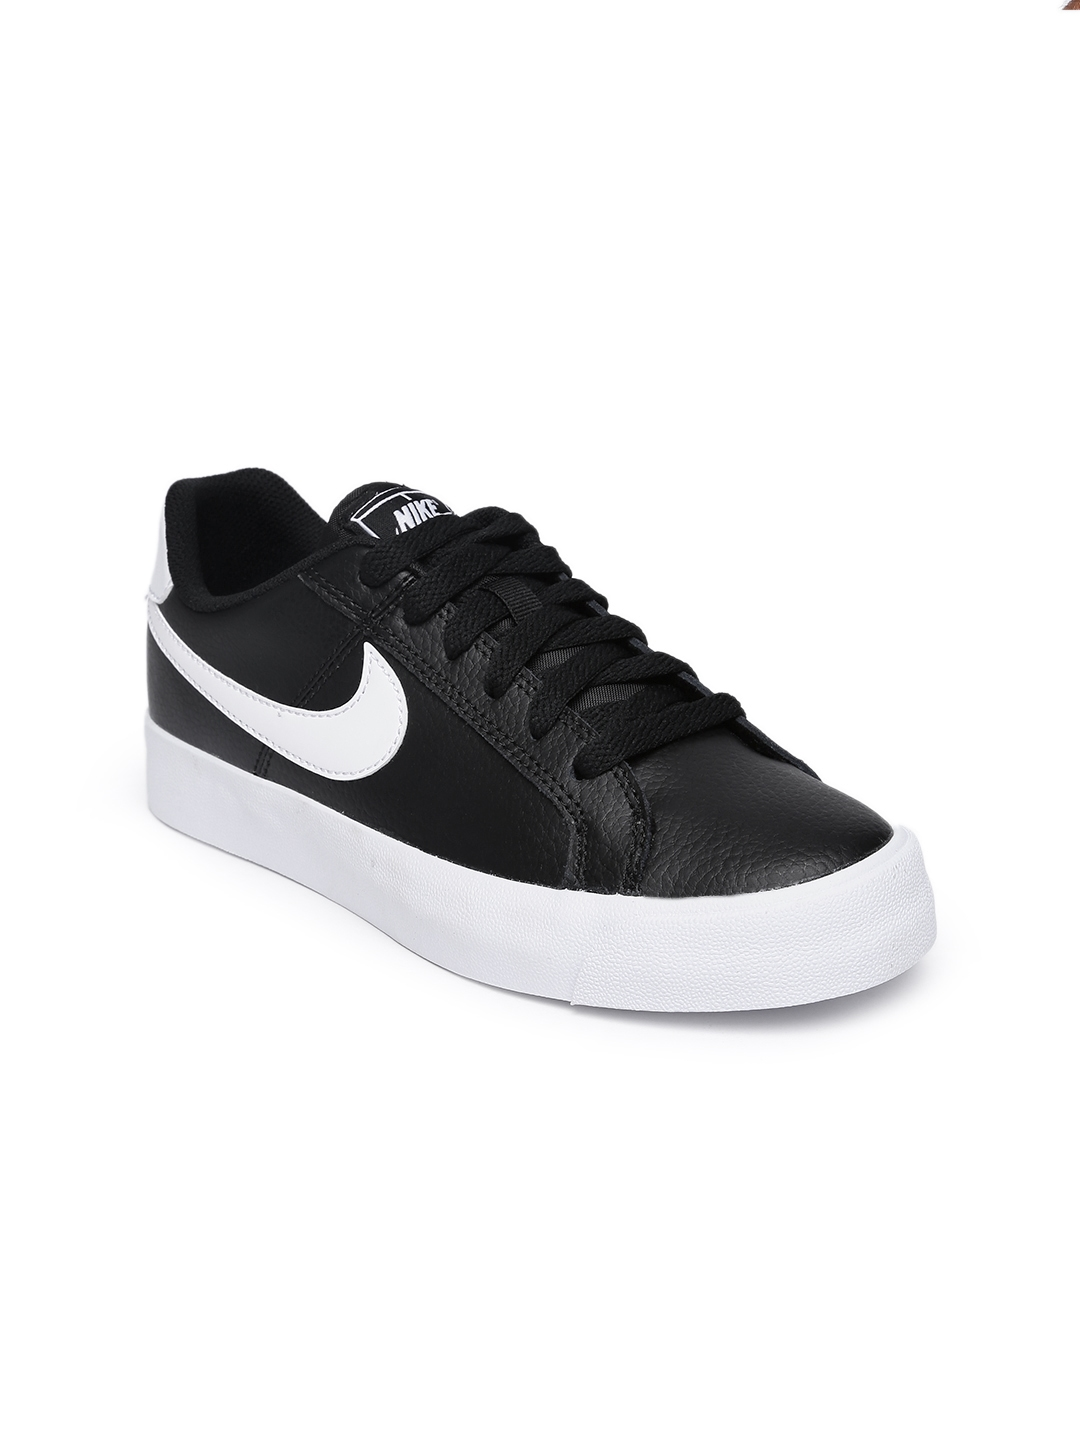 online store cceef c1eaf Nike Women Black Court Royale Leather Sneakers